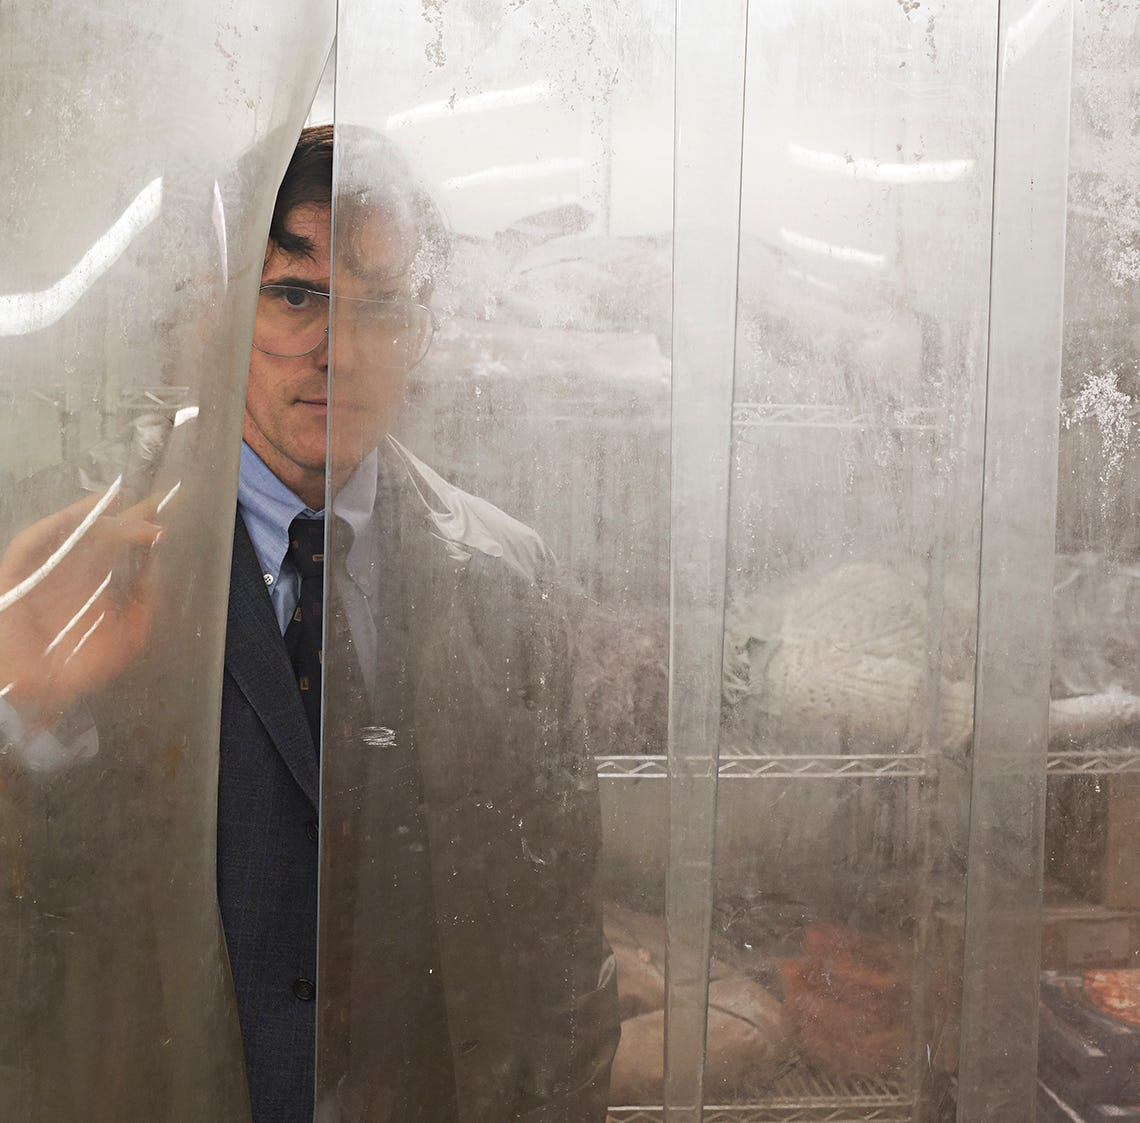 Lars von Trier's 'The House That Jack Built' is as disturbing as promised